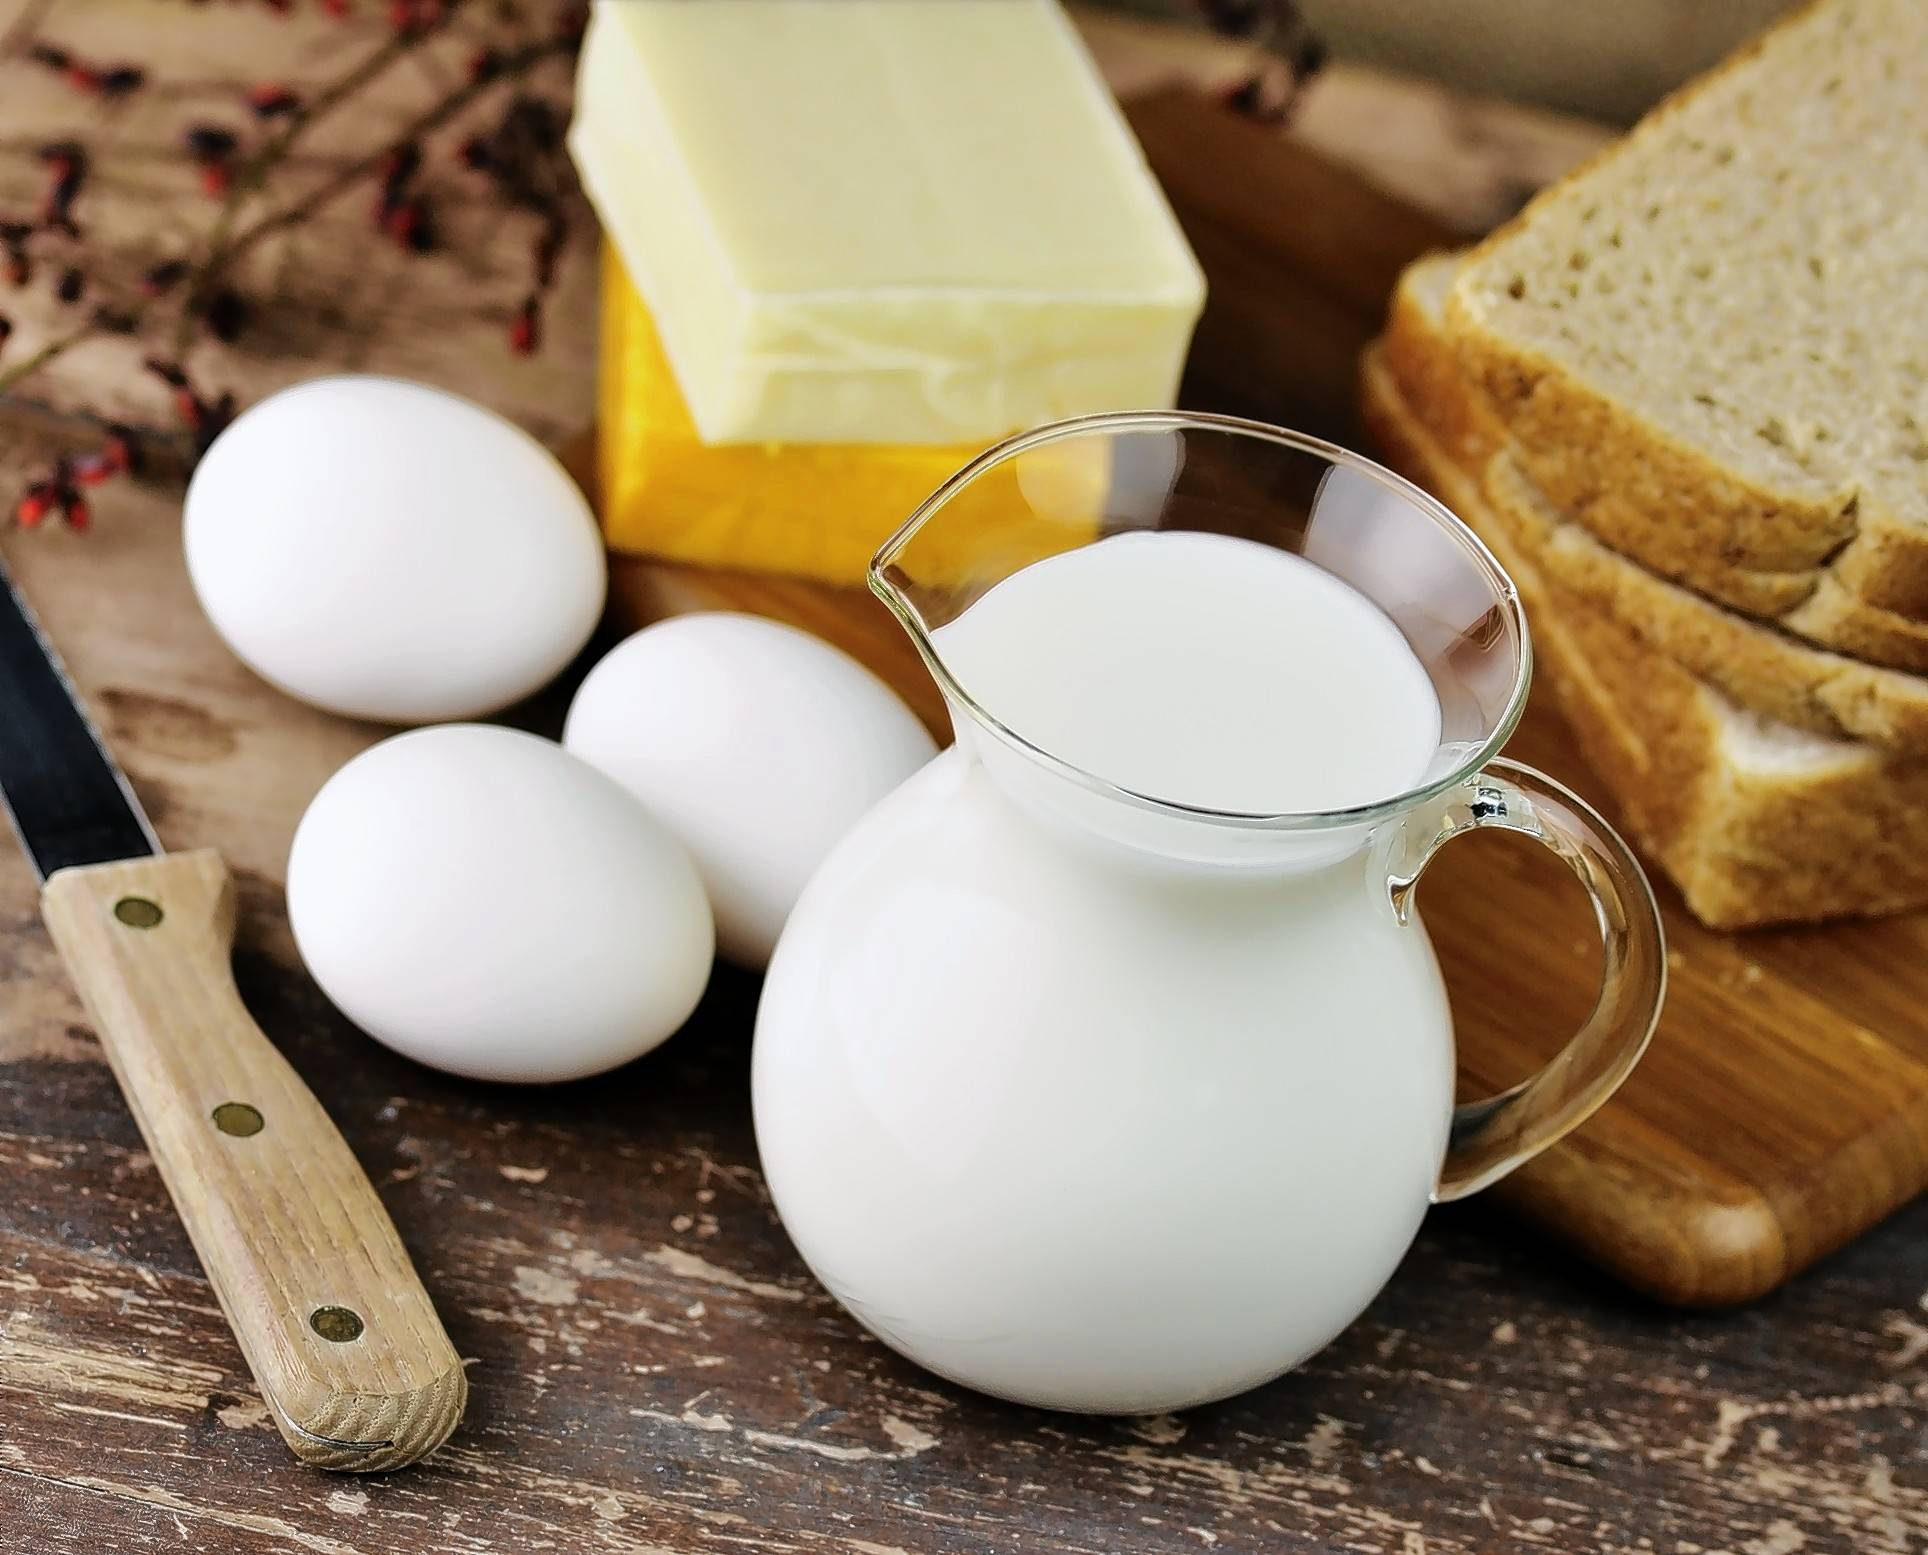 Ideas about whether foods such as eggs, milk, butter, cheese and bread are good for you to eat have changed over the years.